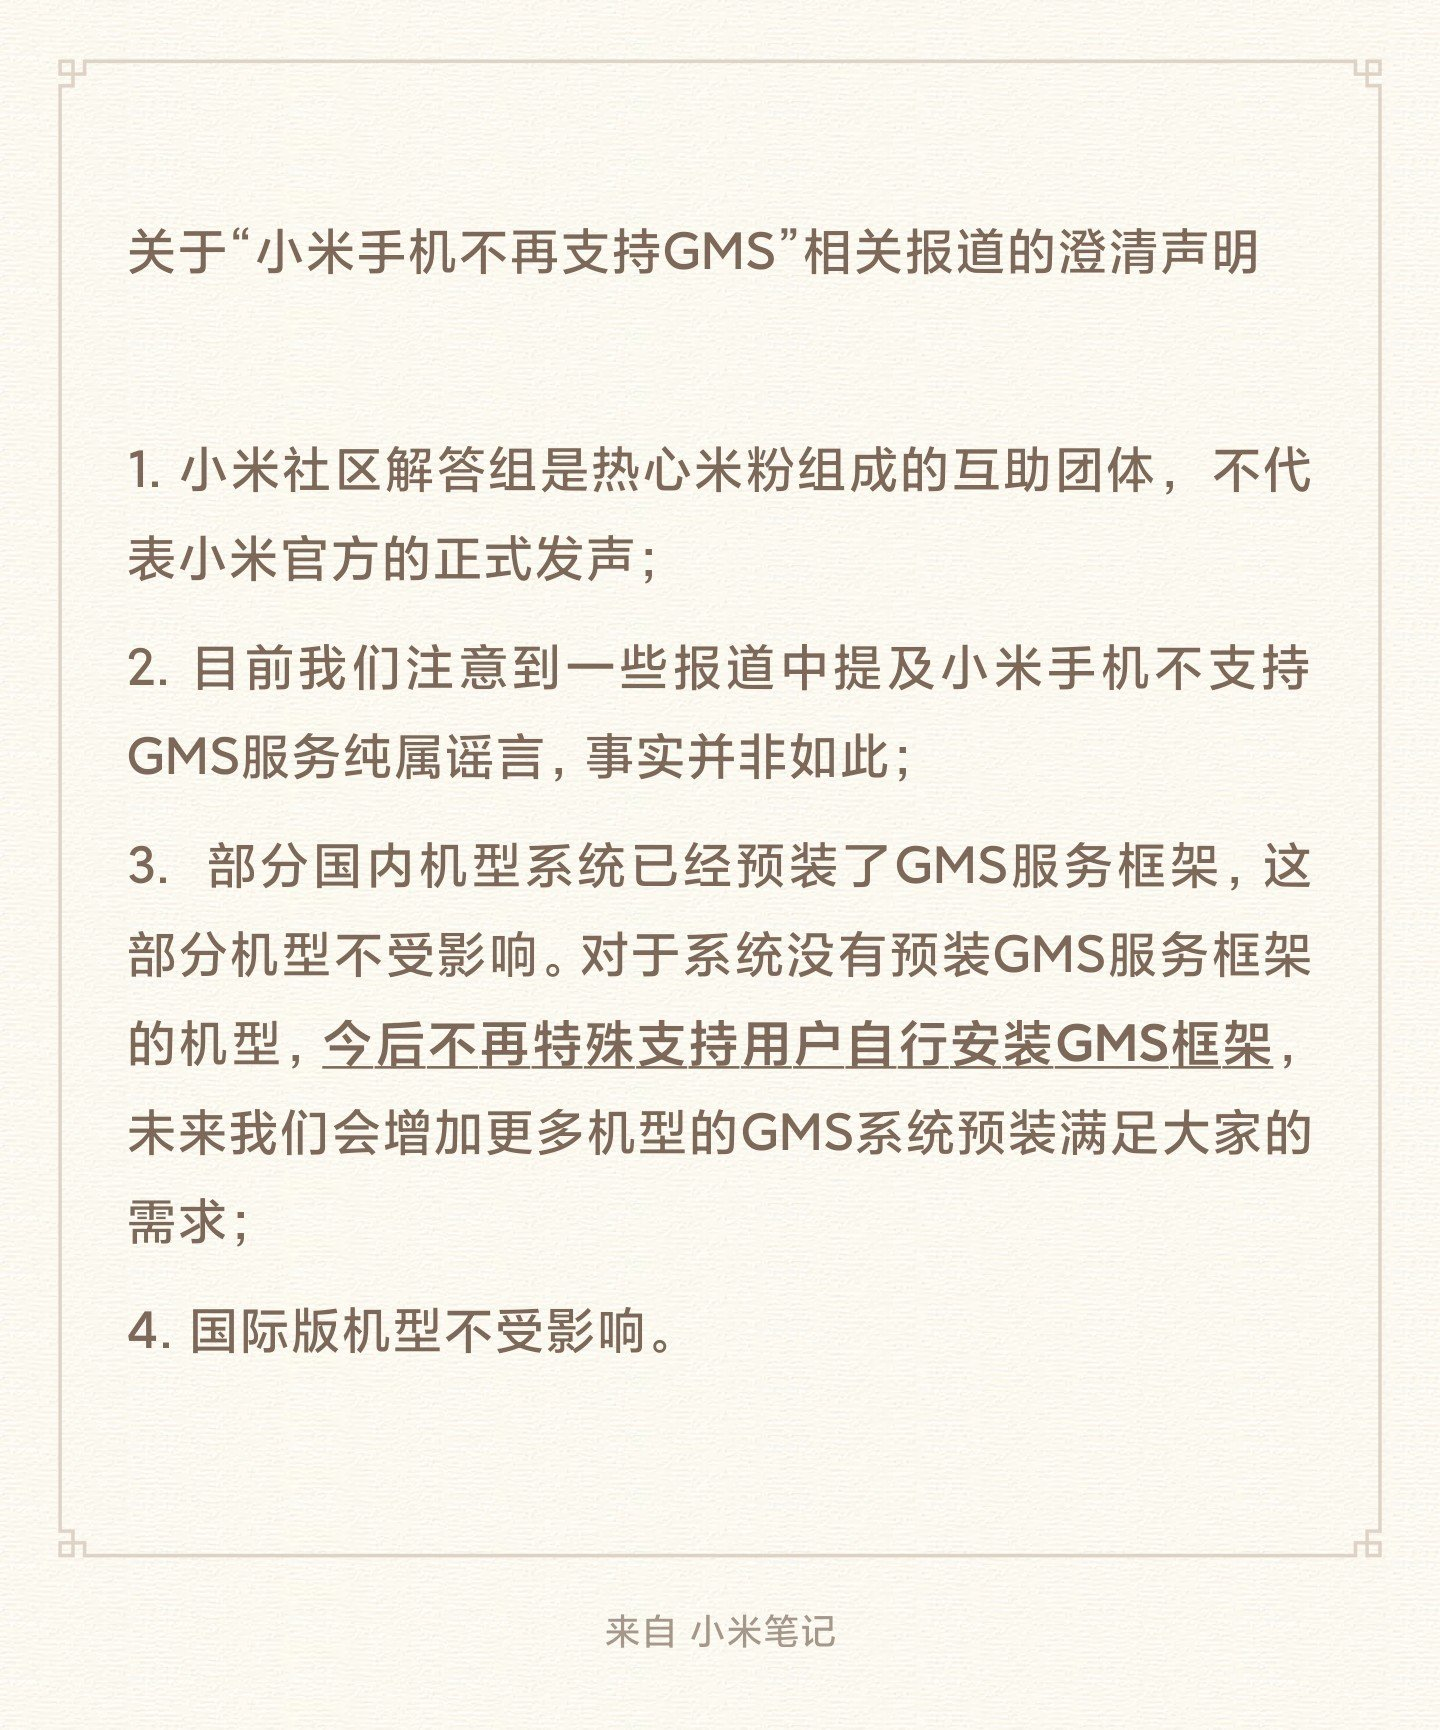 Xiaomi MIUI China ROM GMS Official Statement